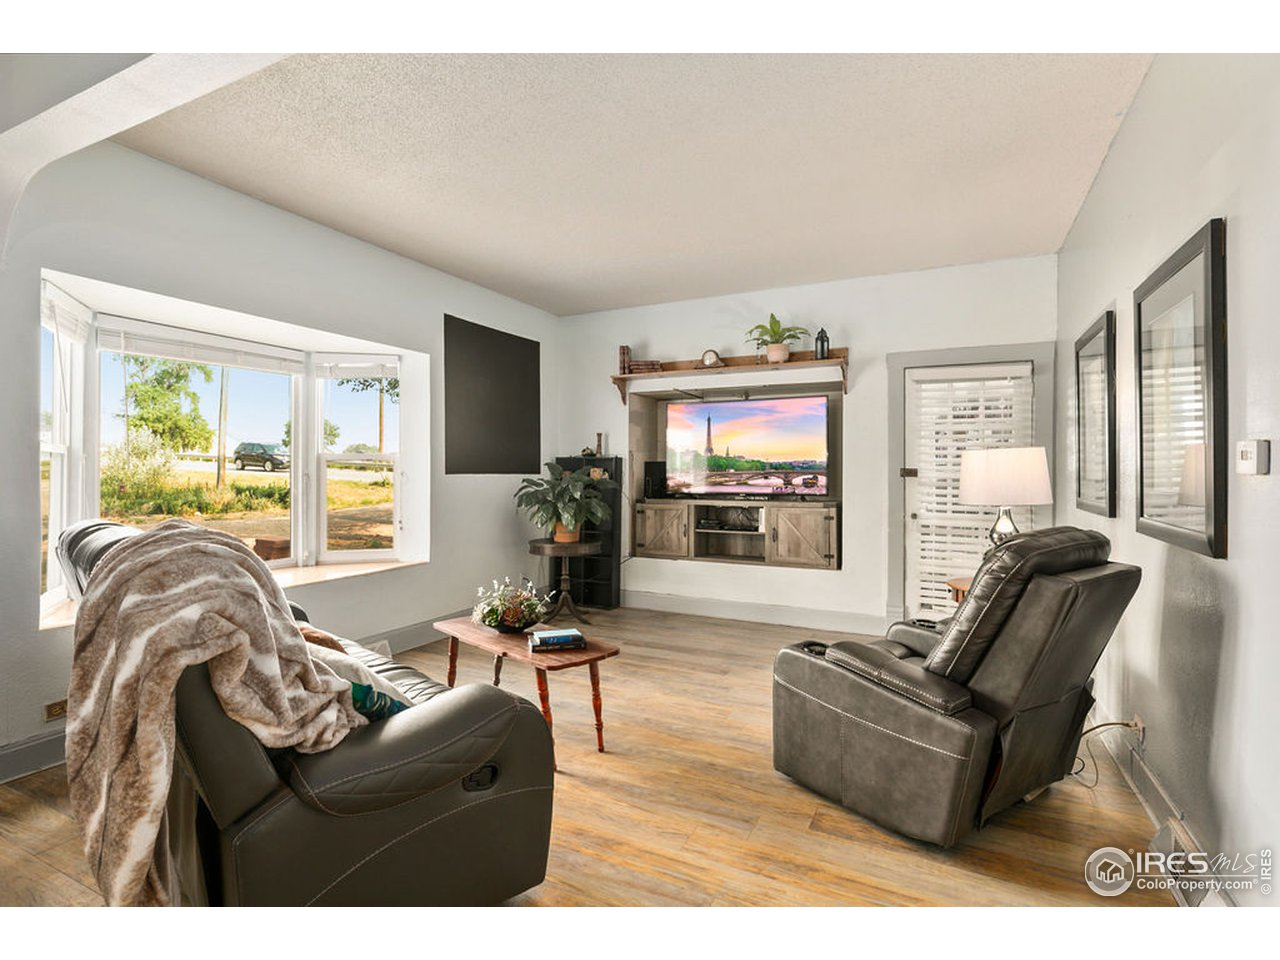 Bright, open, and inviting living room with newer paint and newer flooring.